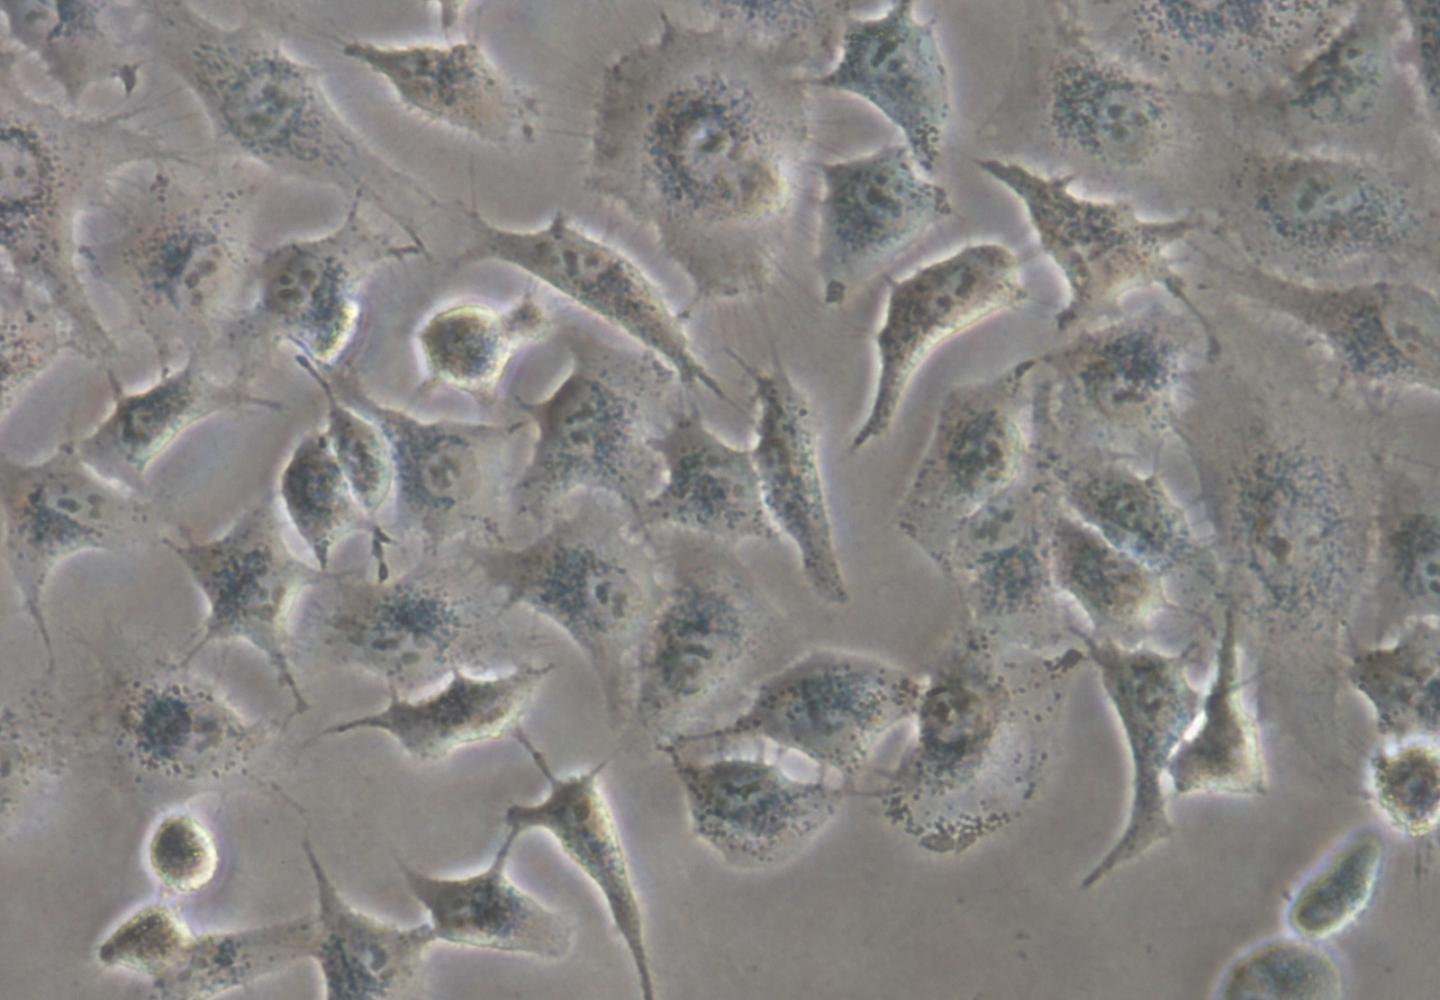 Human Lung Adeconarcinoma Cell Used in This Research